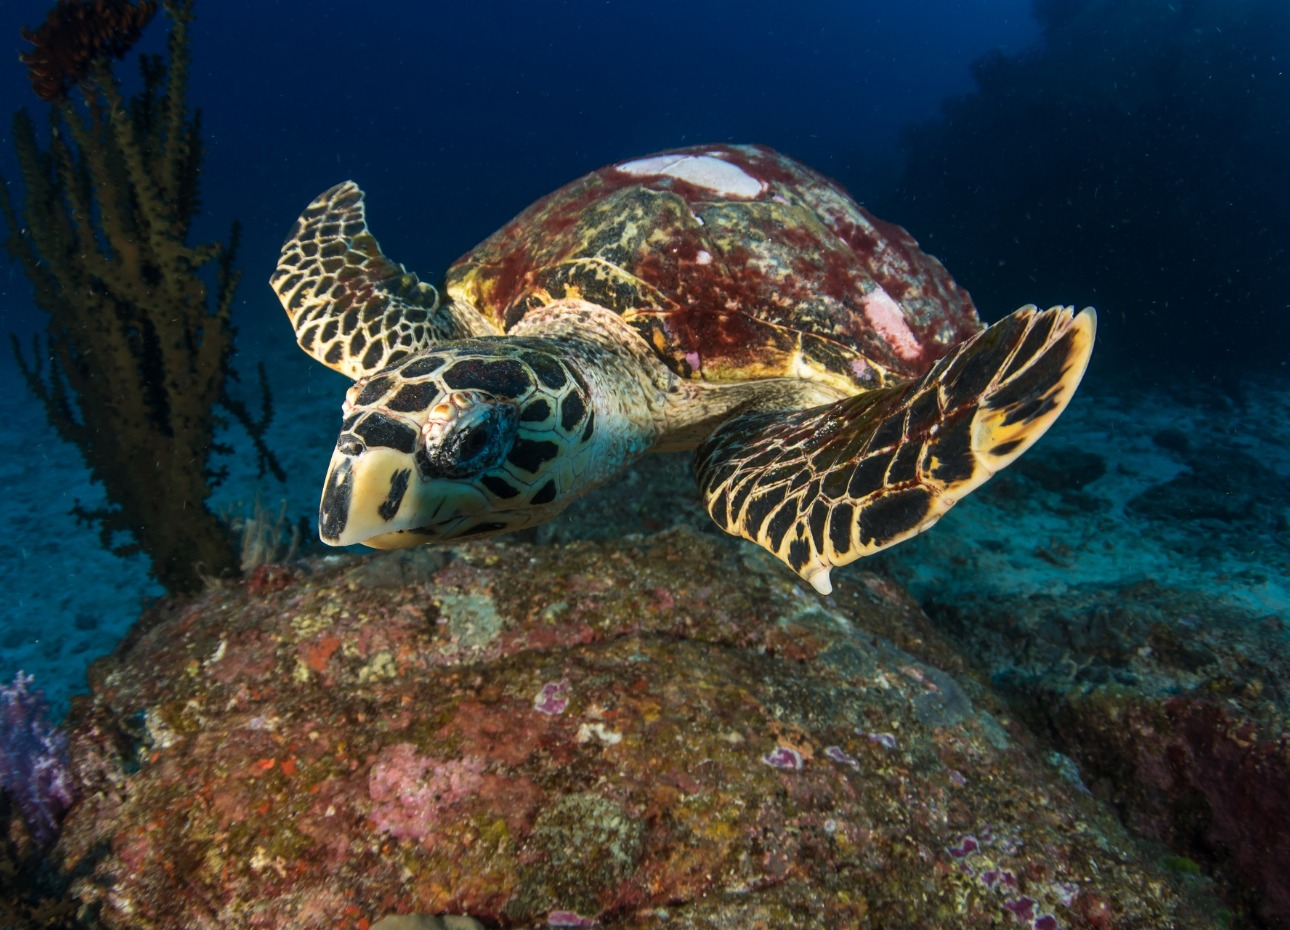 Underwater image of a turtle exploring the reefs